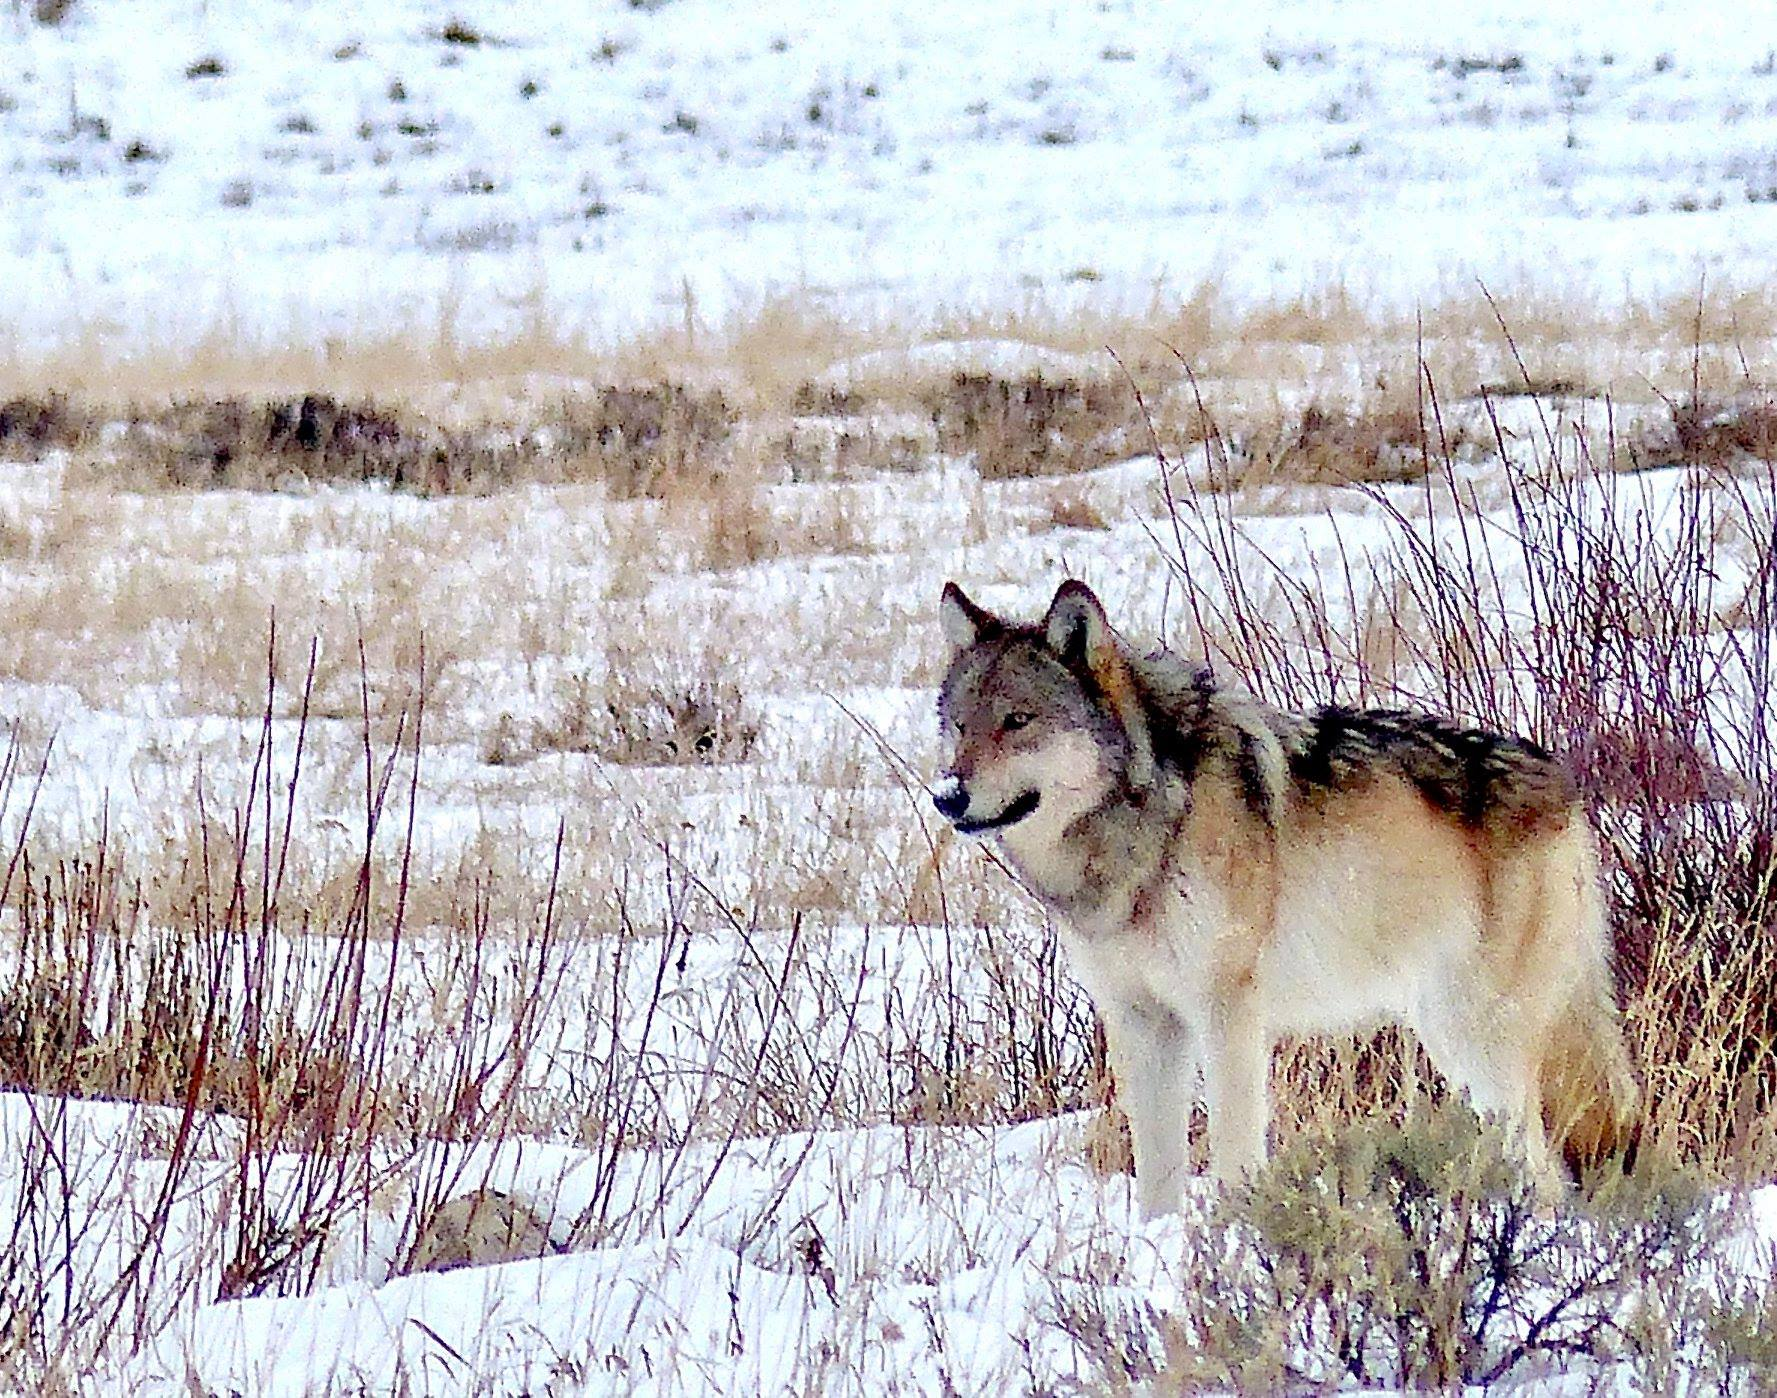 SINCE THEIR REINTRODUCTION IN 1995, GREY WOLVES HAVE HELPED RESTORE ECOLOGICAL BALANCE IN YELLOWSTONE. THEIR ECONOMIC VALUE TO THE PARK AND SURROUNDING AREAS IS 499 MILLION US DOLLARS ANNUALLY. IMAGE:  RICK LAMPAUGH, AUTHOR , CONSERVATIONIST, AND WOLF ADVOCATE